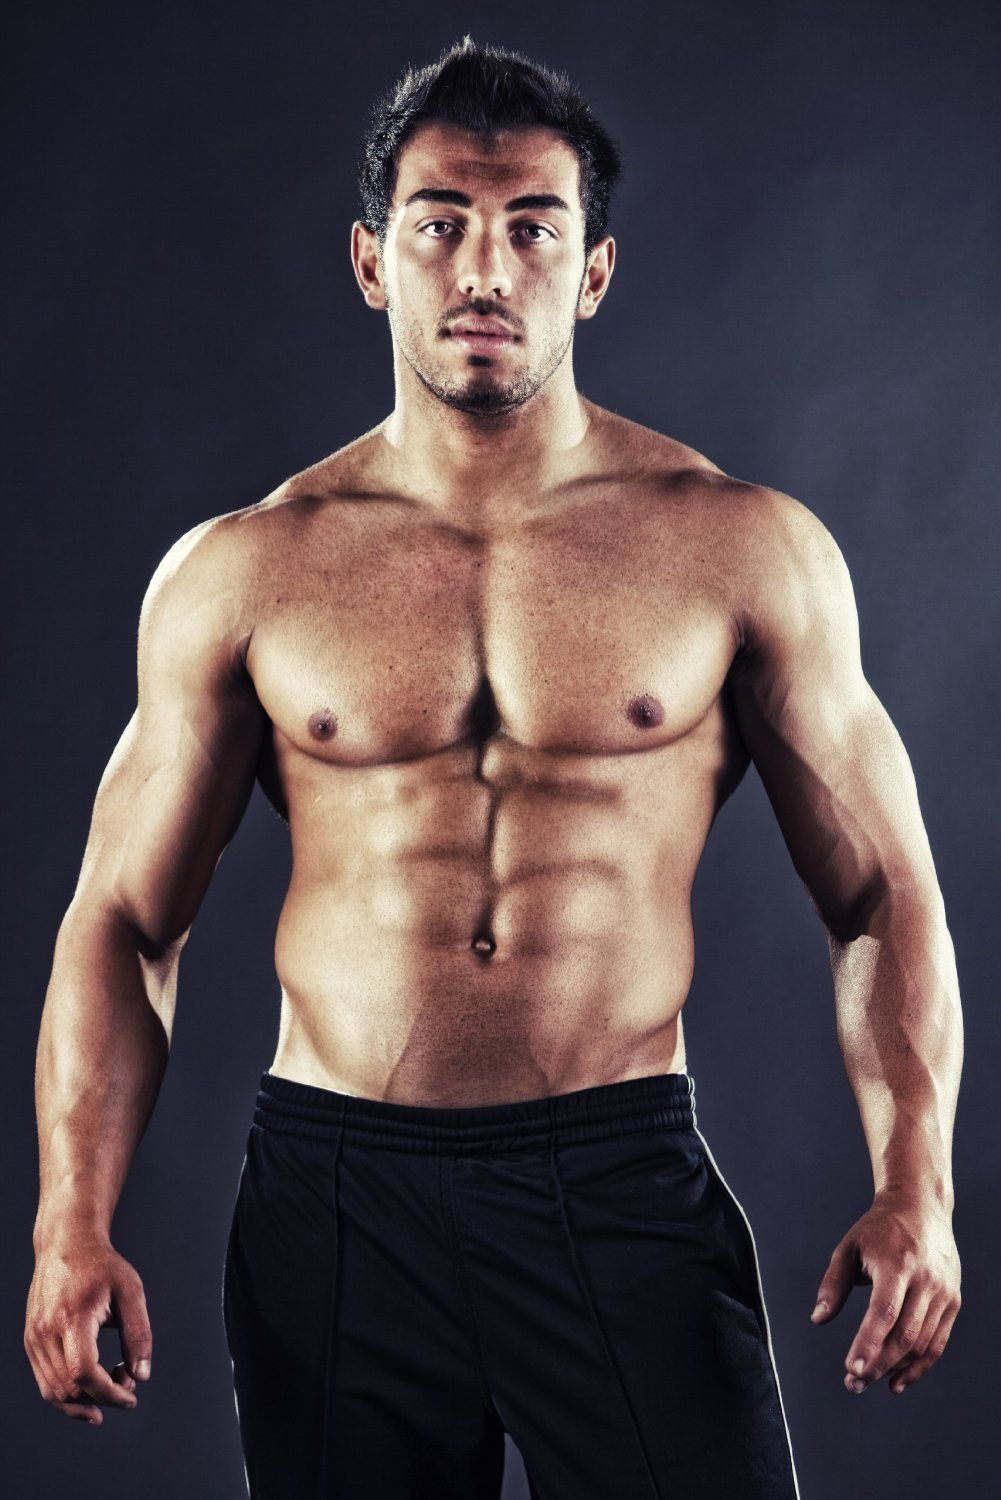 The Golden Ratio, as it usually referred to, makes us look gorgeous and very pleasant; aesthetically right. Someone who is very fit but bulky, doesn't look that good and cannot be attractive, simply because the eye is pre-programmed to recognize this golden ration. Click Here: http://gainleanmusclesource.com/adonis-golden-ratio-review/